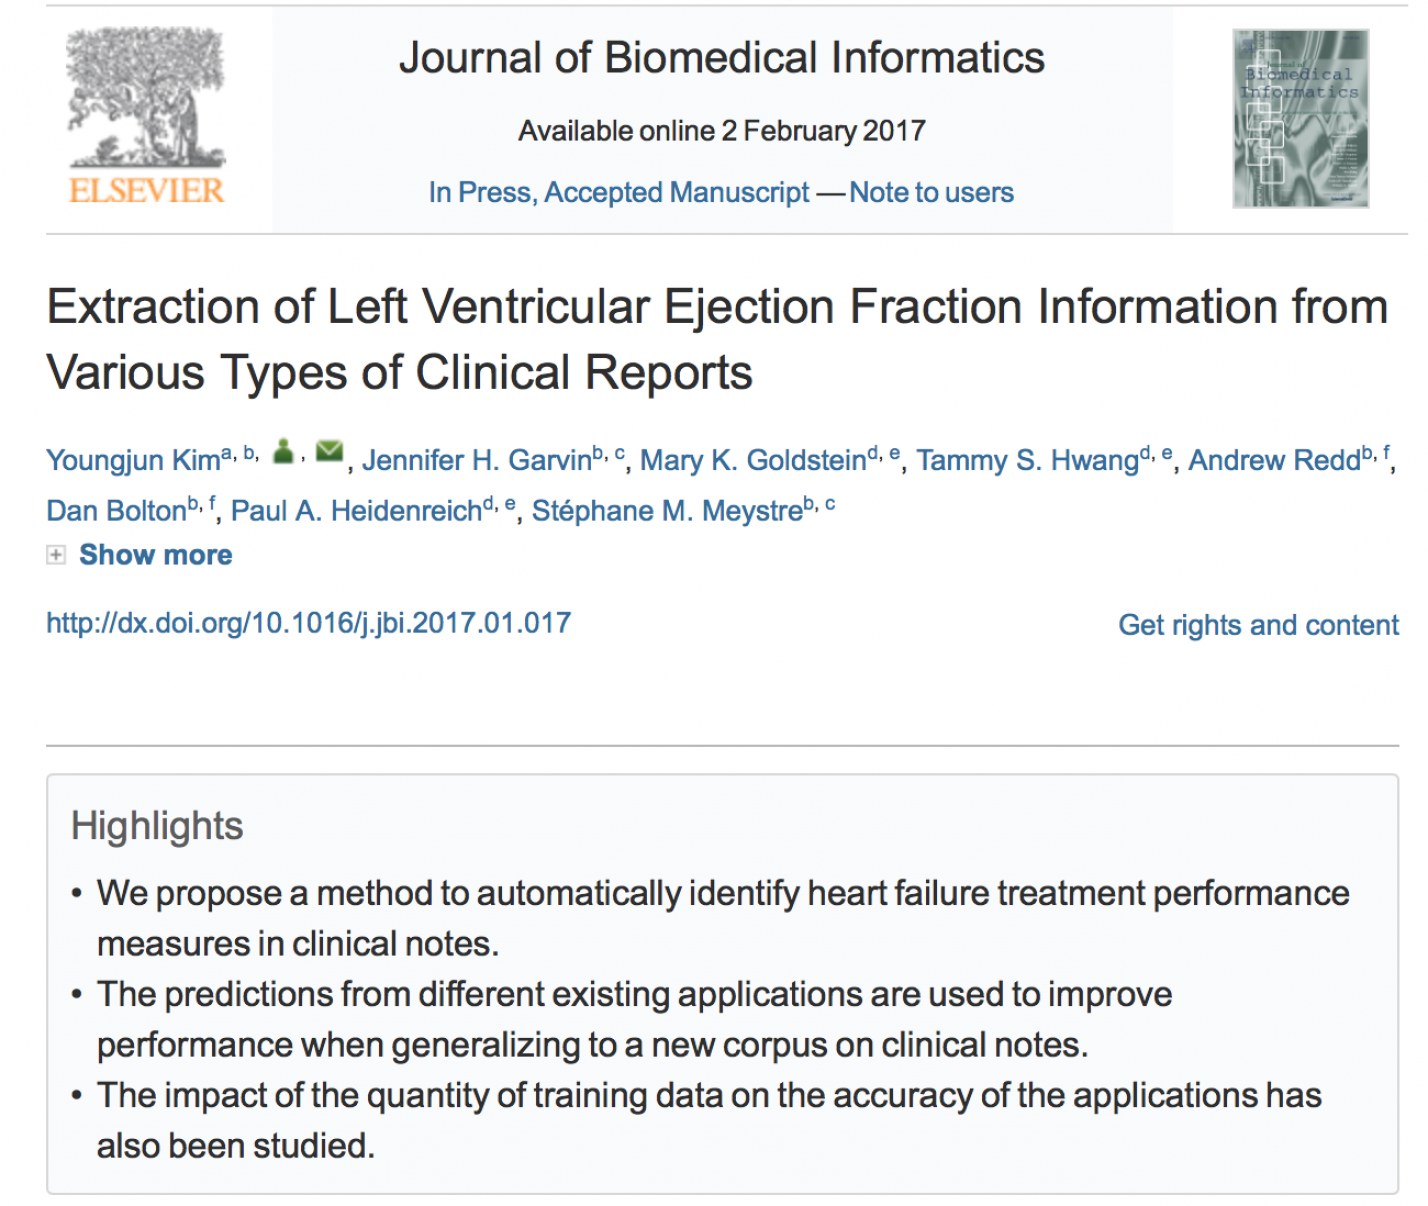 Extraction of Left Ventricular Ejection Fraction Information from Various Types of Clinical Reports